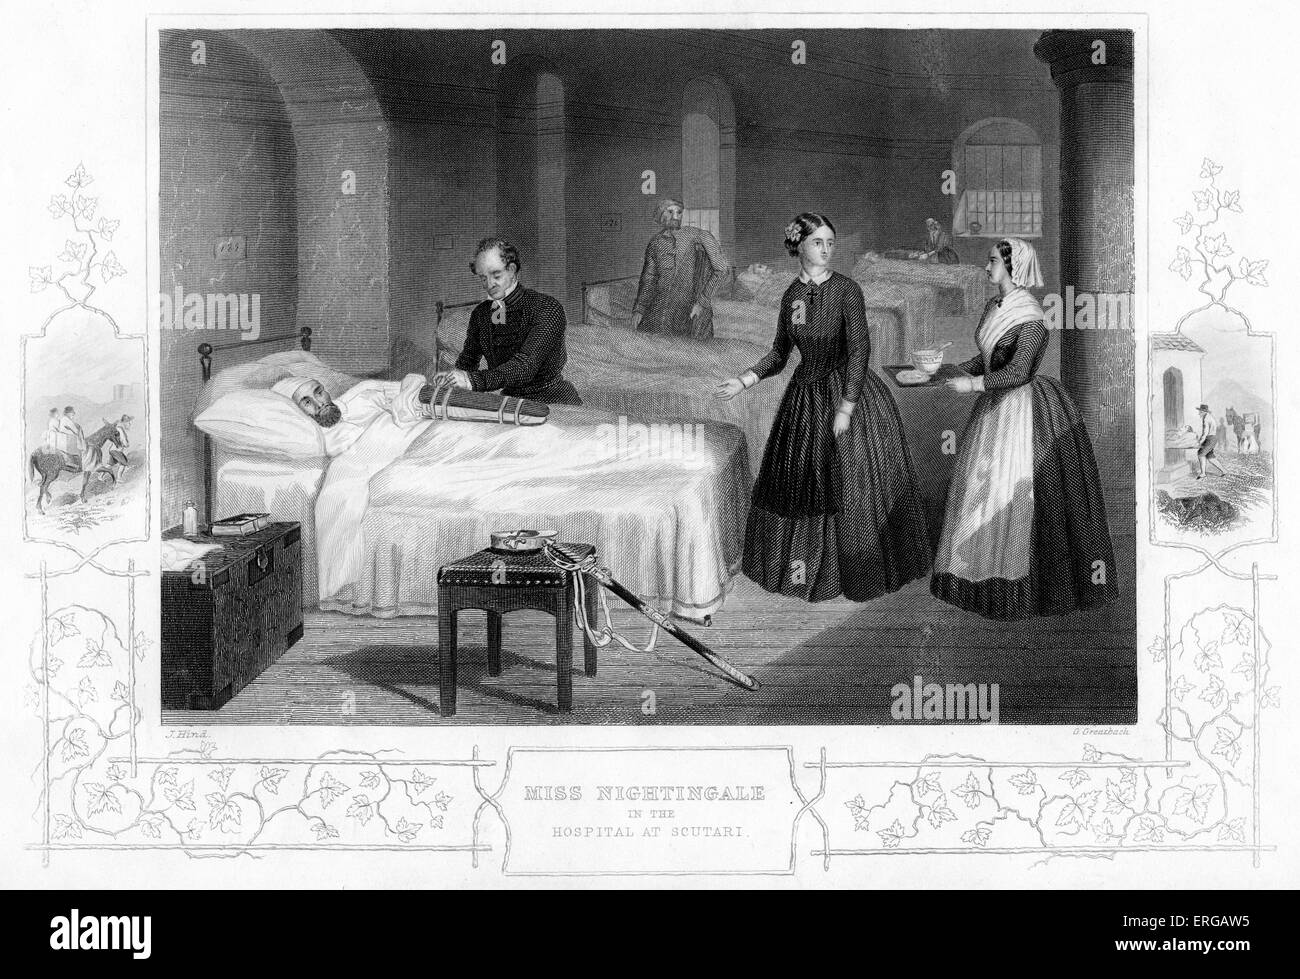 Crimean War: Florence Nightingale in the Hospital at Scutari. Nightingale (12 May 1820 – 13 August 1910) was a celebrated - Stock Image